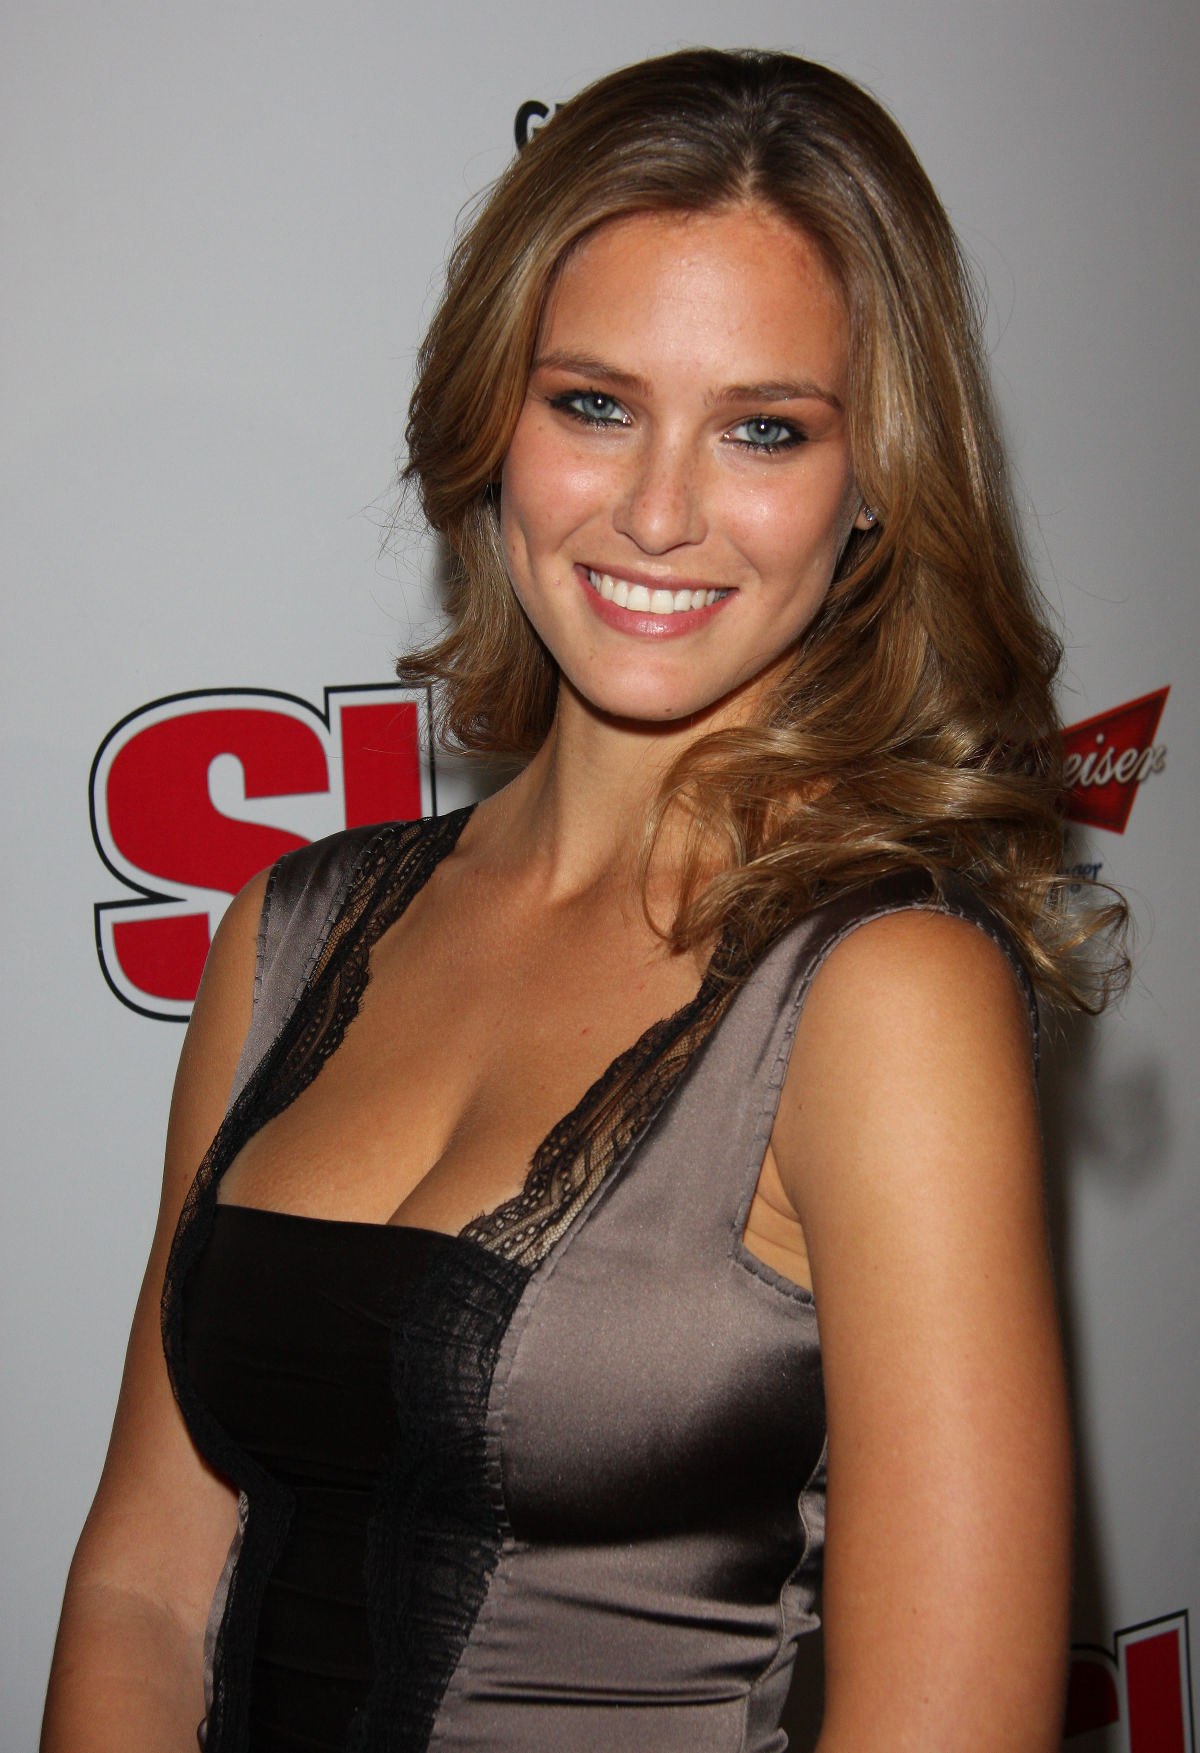 Bar Refaeli photo 50 of 1357 pics, wallpaper - photo ... Bar Refaeli